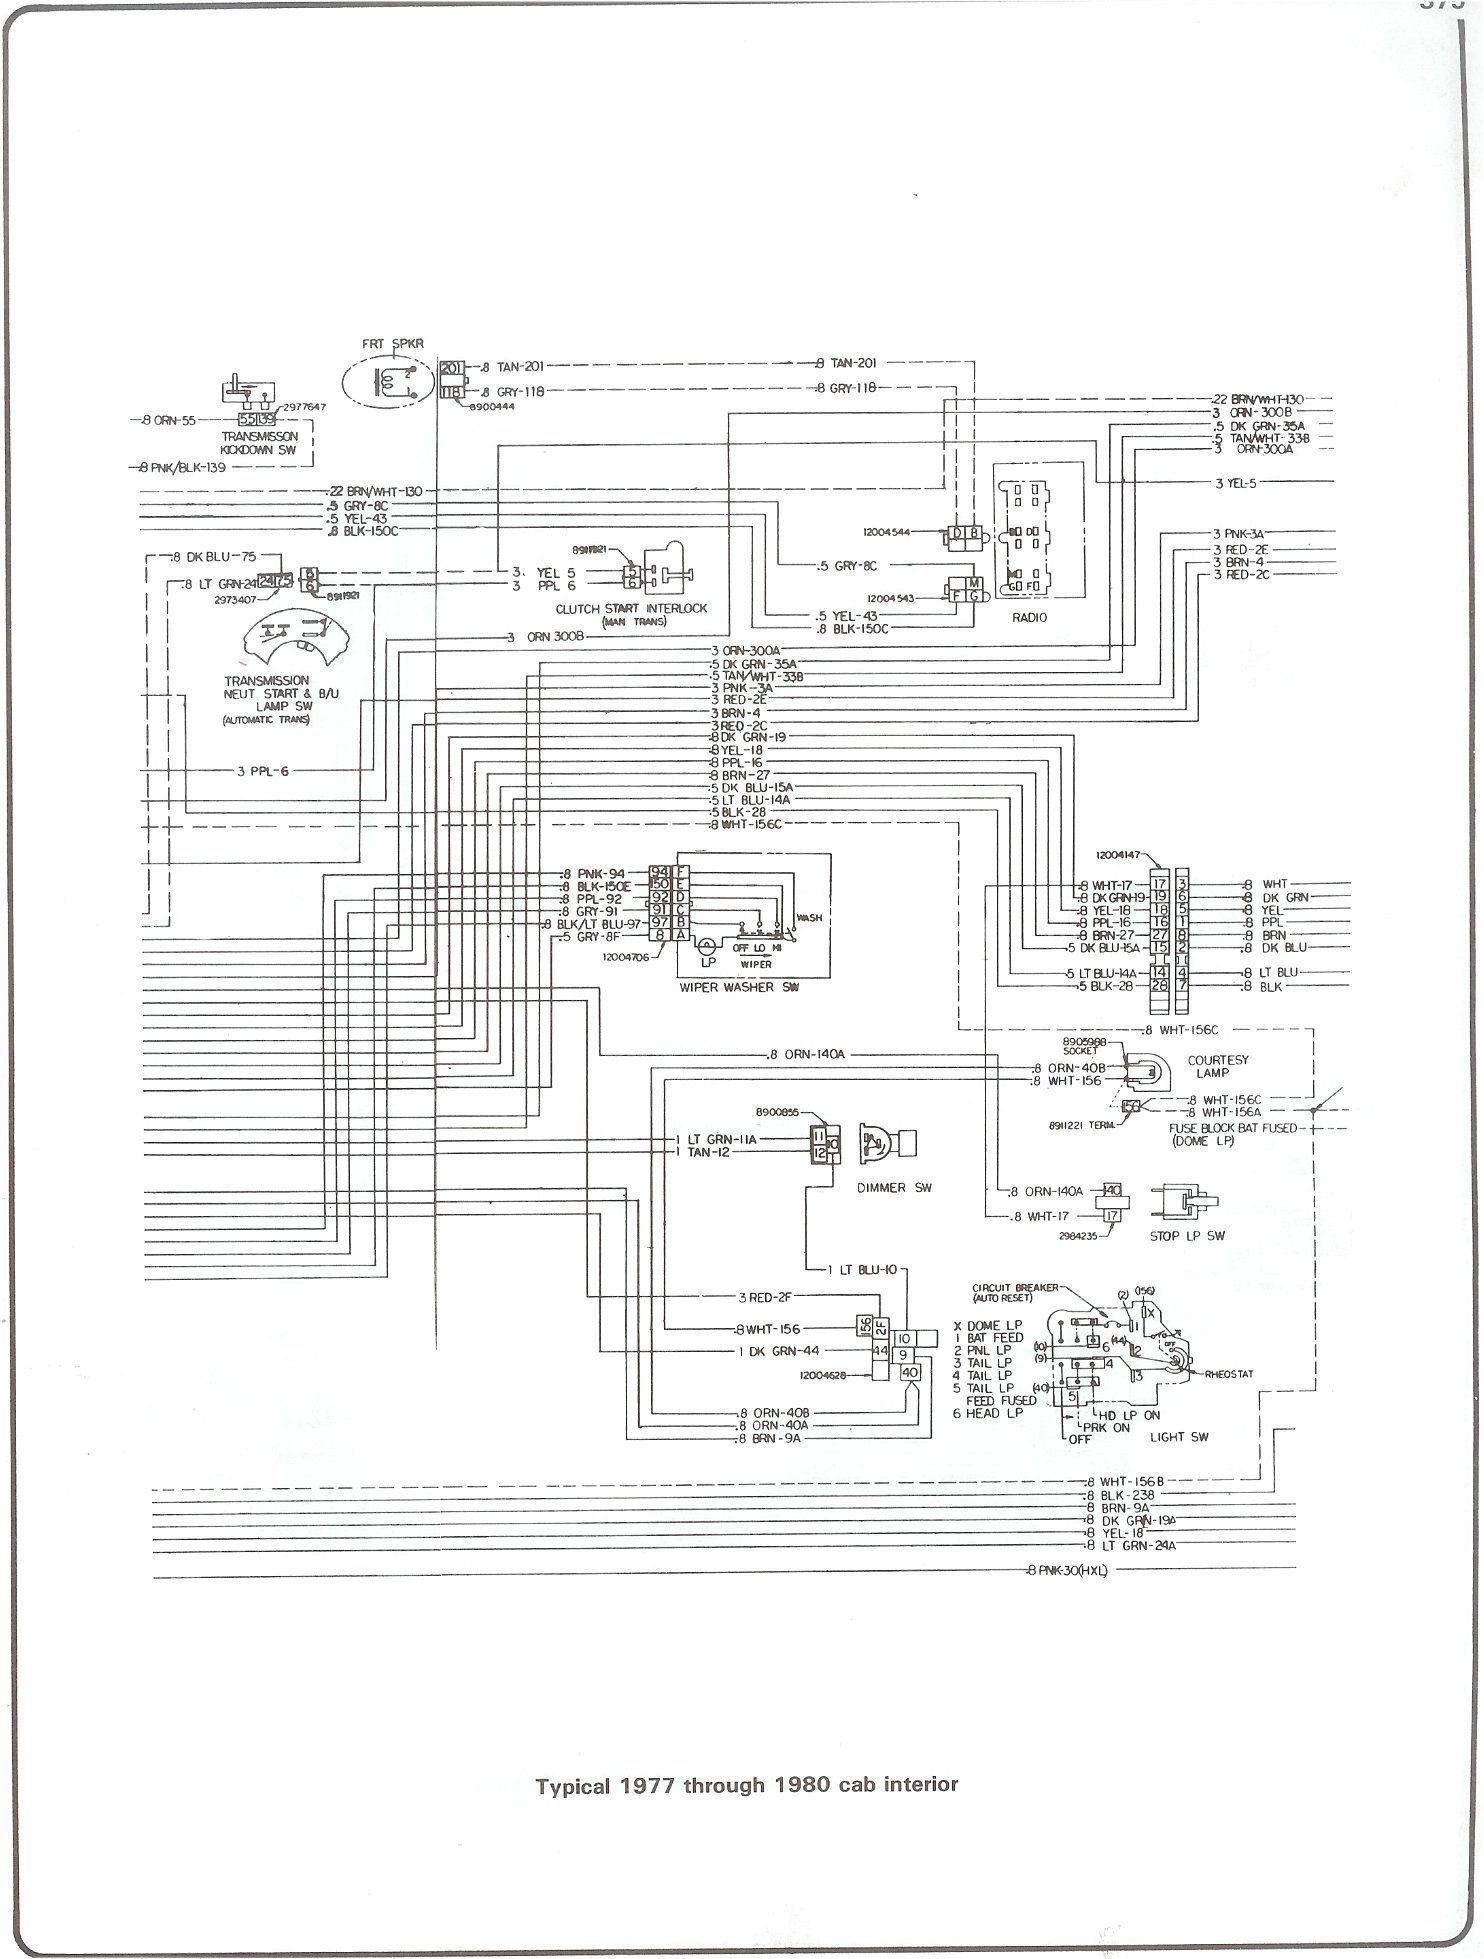 77 80_cab_inter complete 73 87 wiring diagrams 1975 c10 wiring diagram at gsmx.co